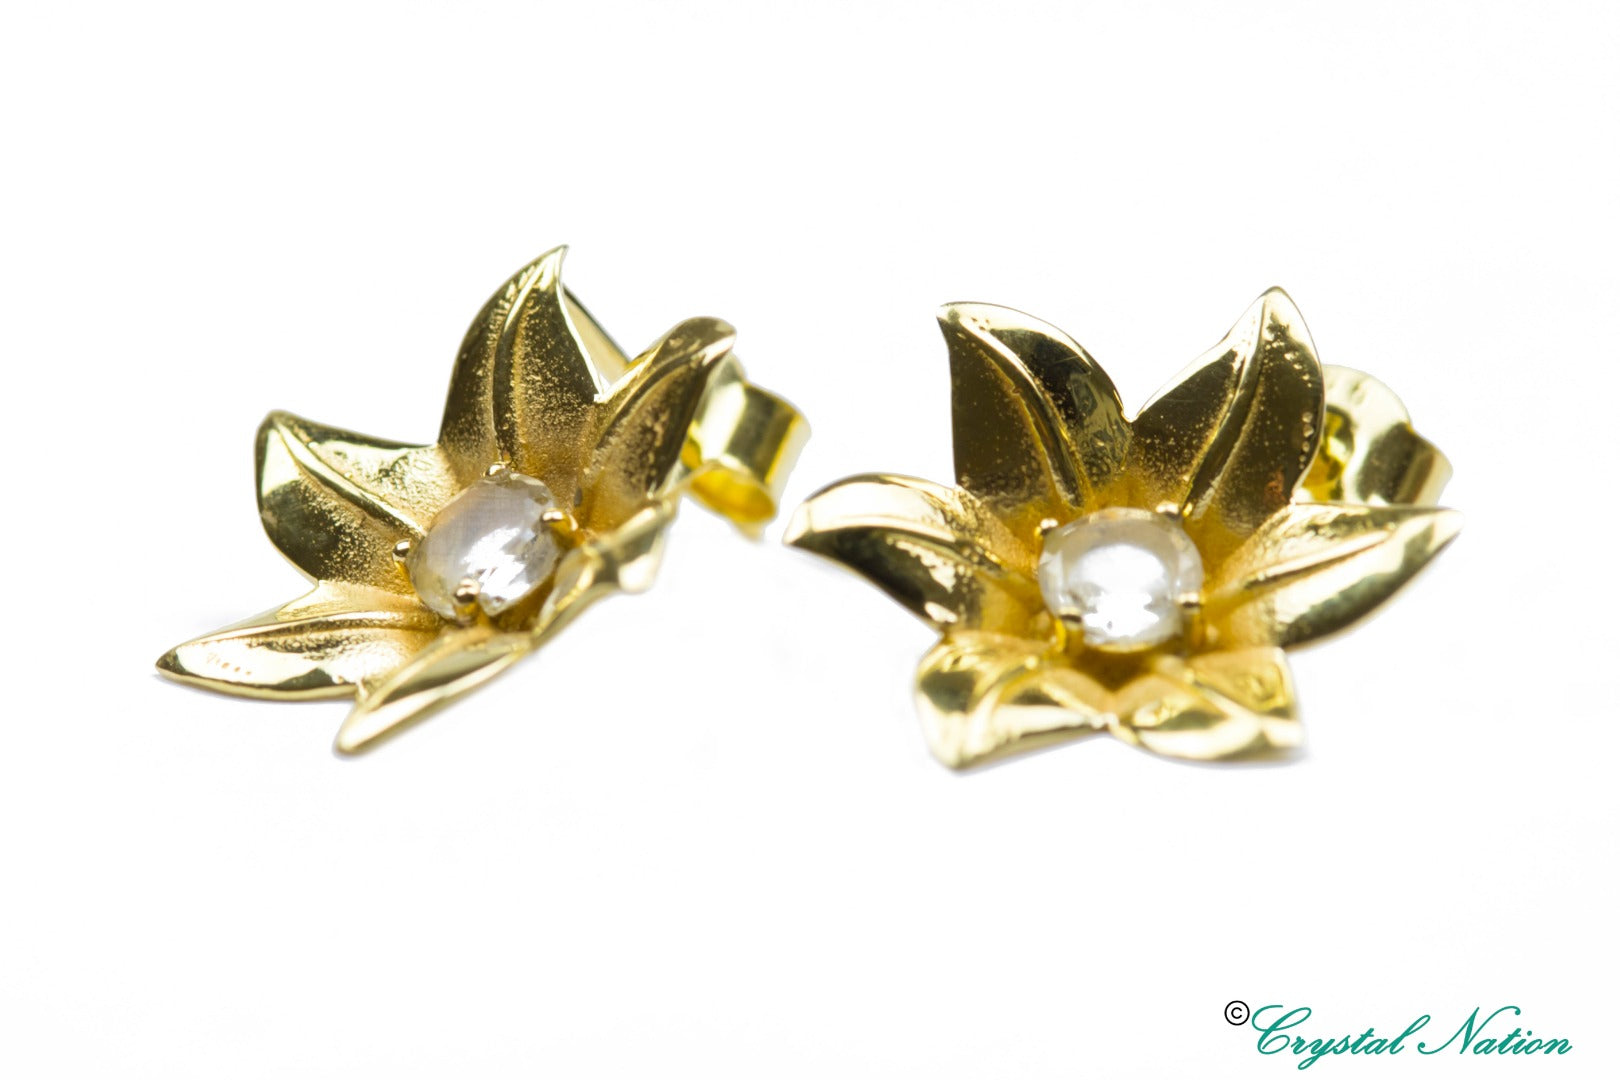 Libyan Desert Glass 9 Carat Gold Flower Earrings ~ (541678)